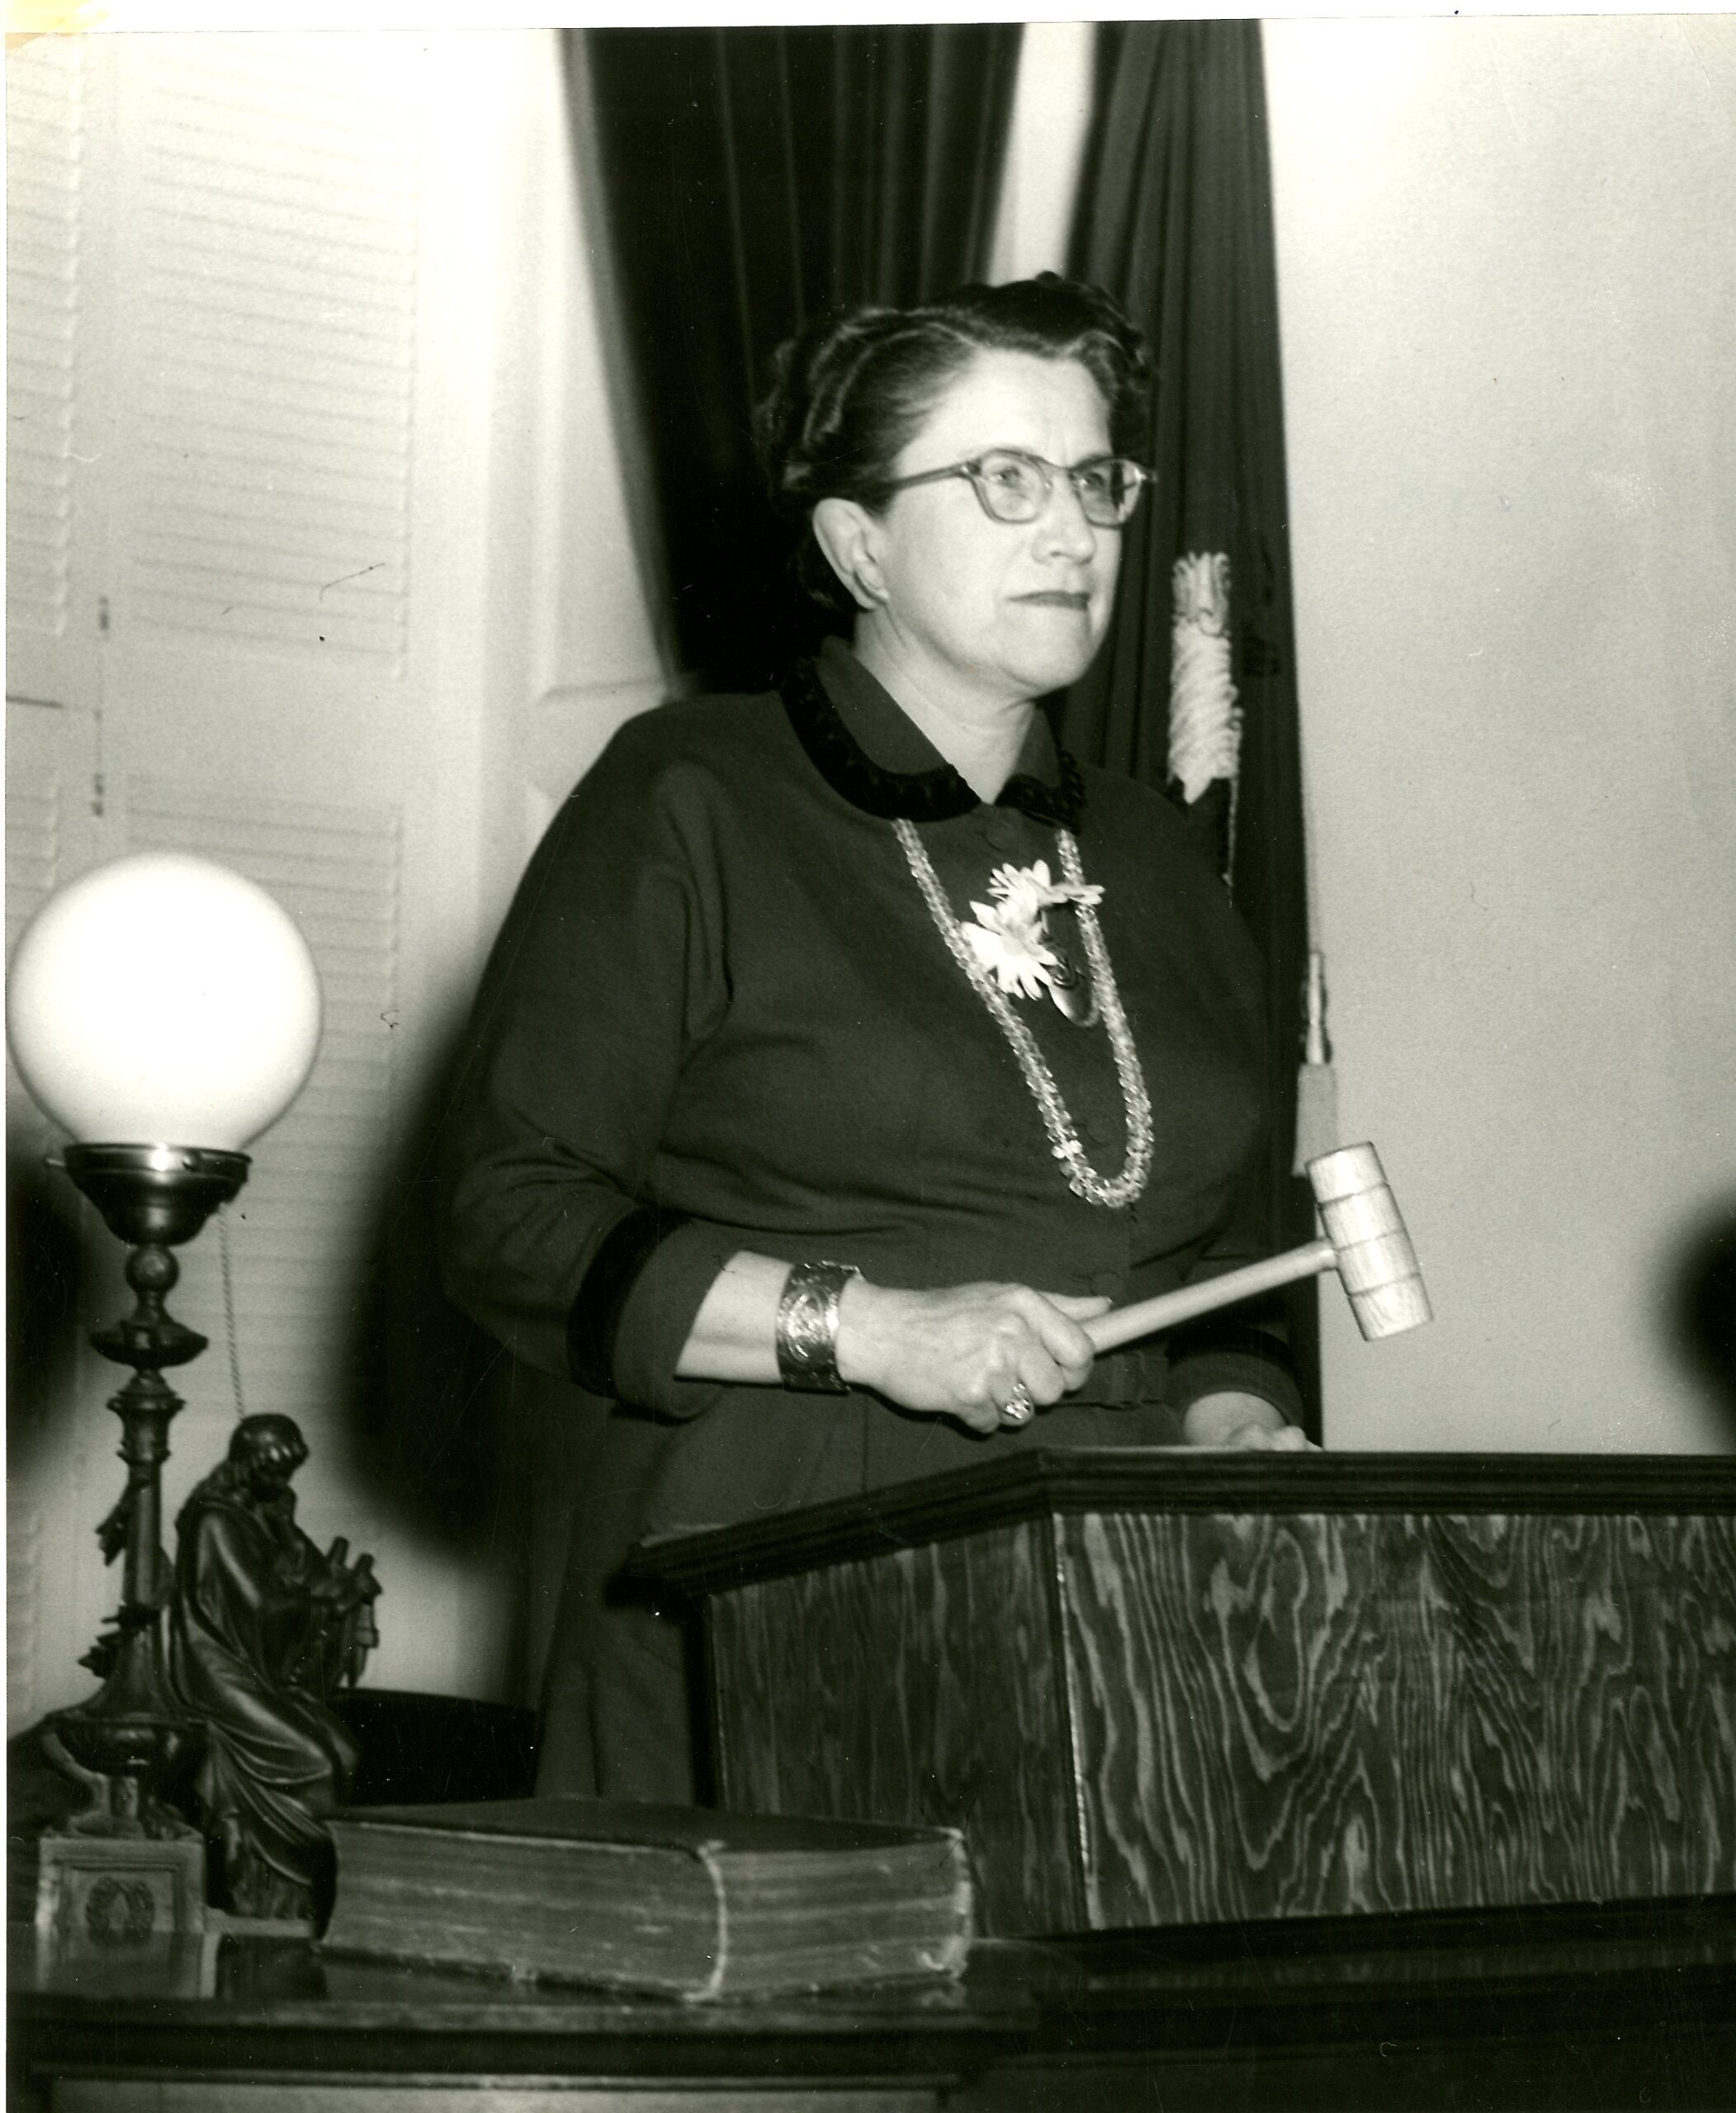 Consuelo standing at a podium holding a wooden gavel.